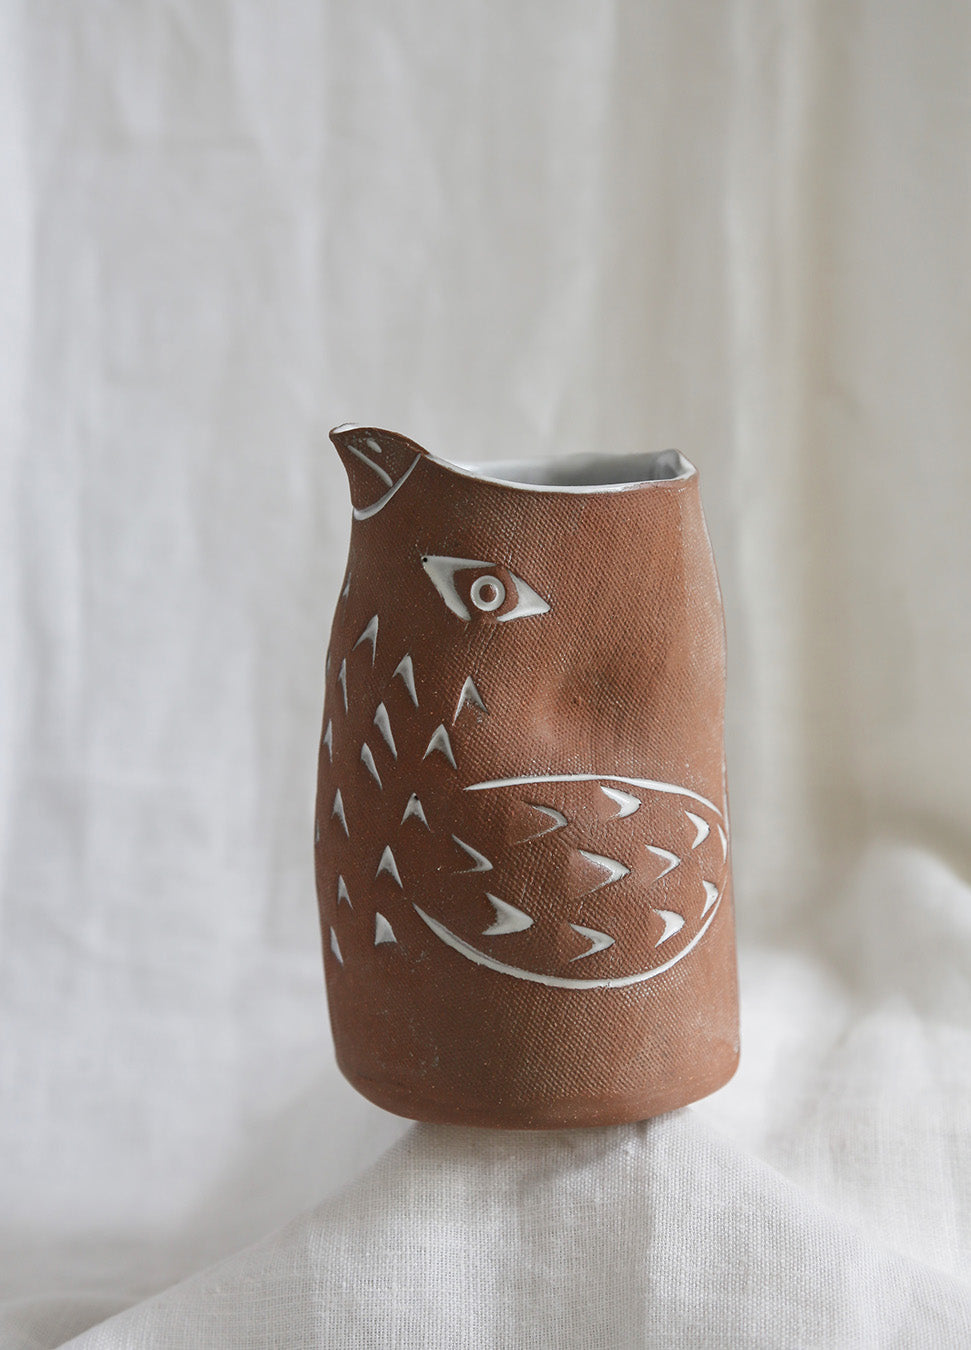 Knotwork Bird Pitcher